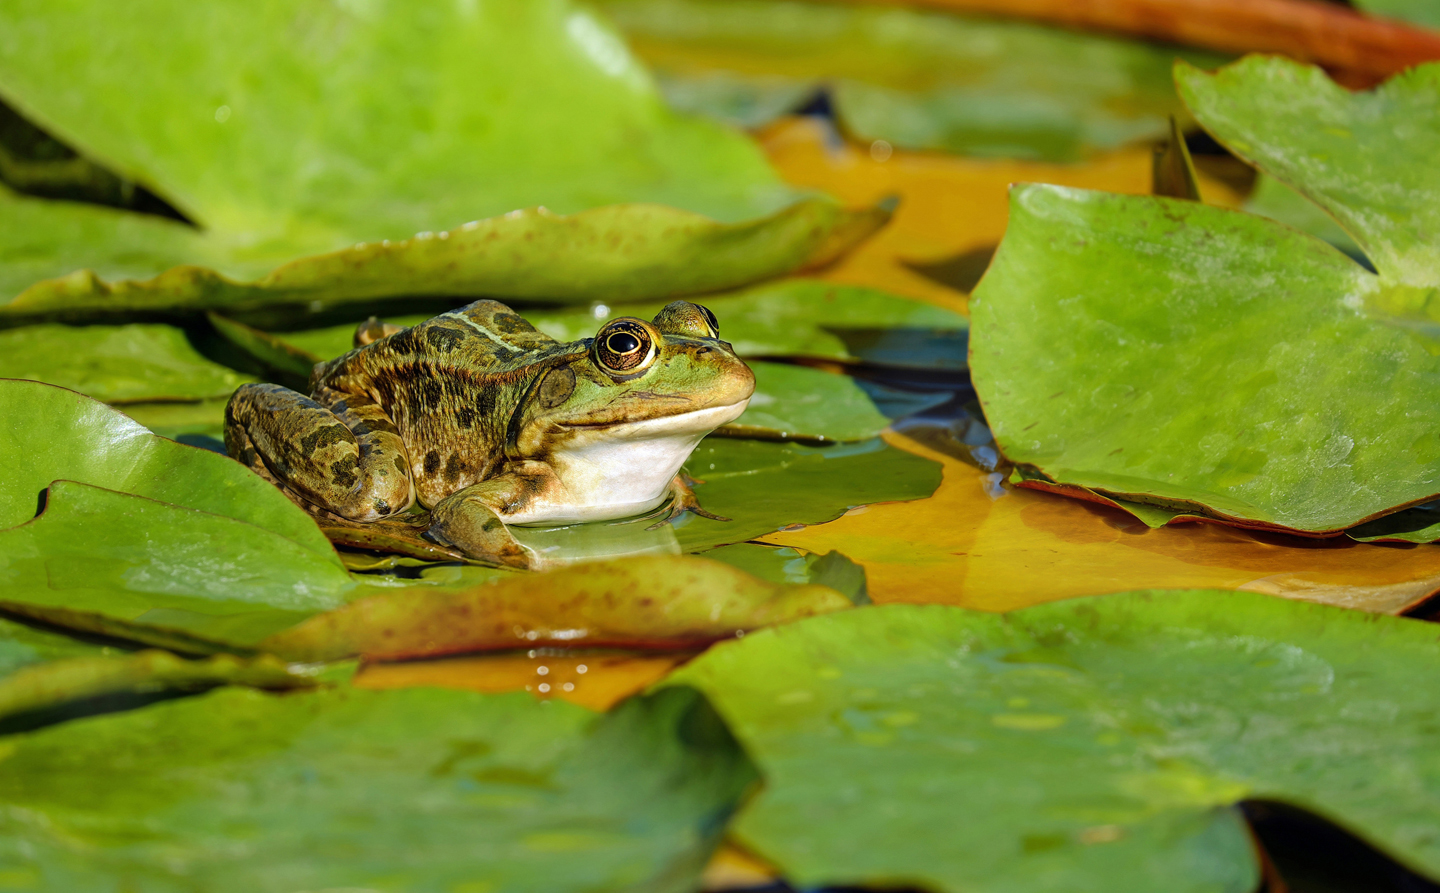 frog on lily pads - Create a Koi Garden